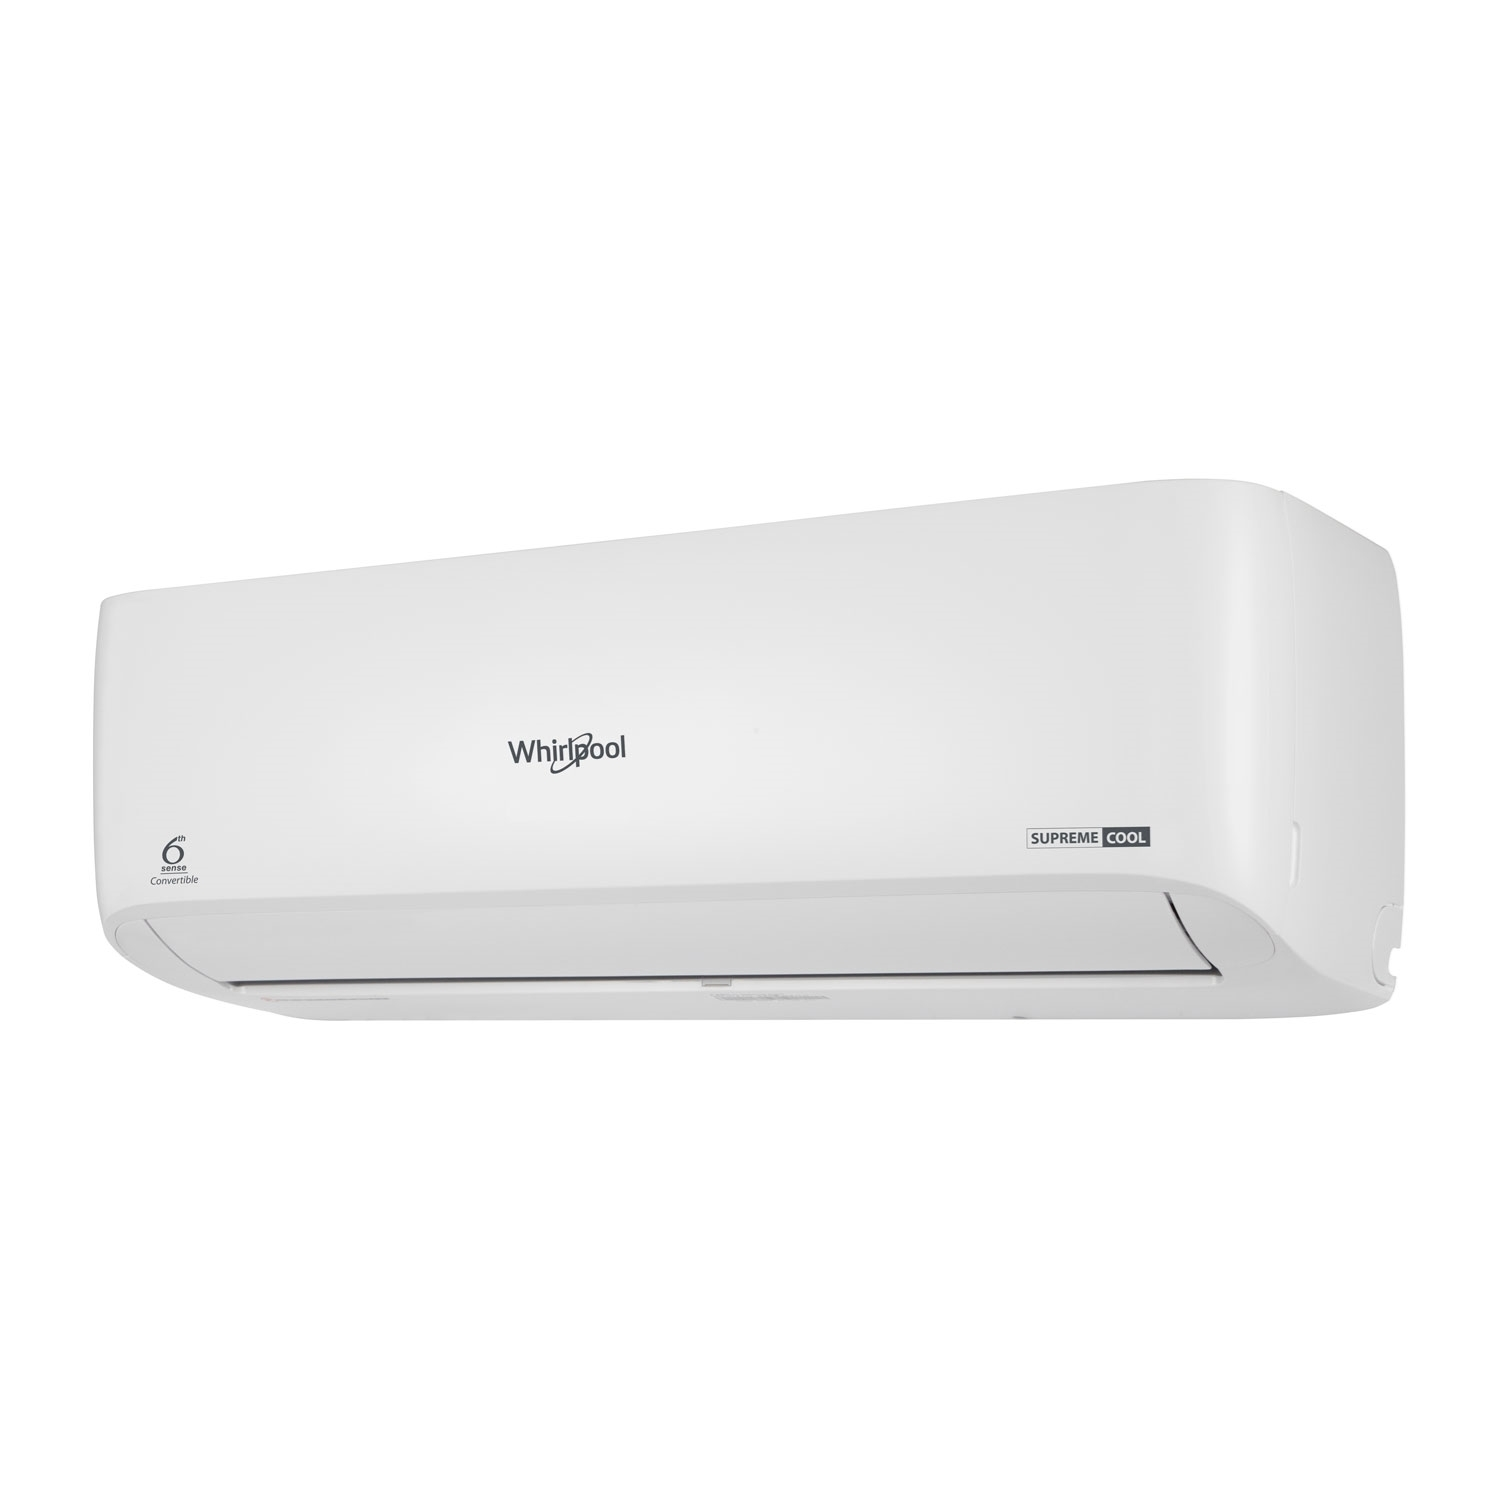 Whirlpool AC 1.5 Ton Supreme Coolpro 3s Corp Inv